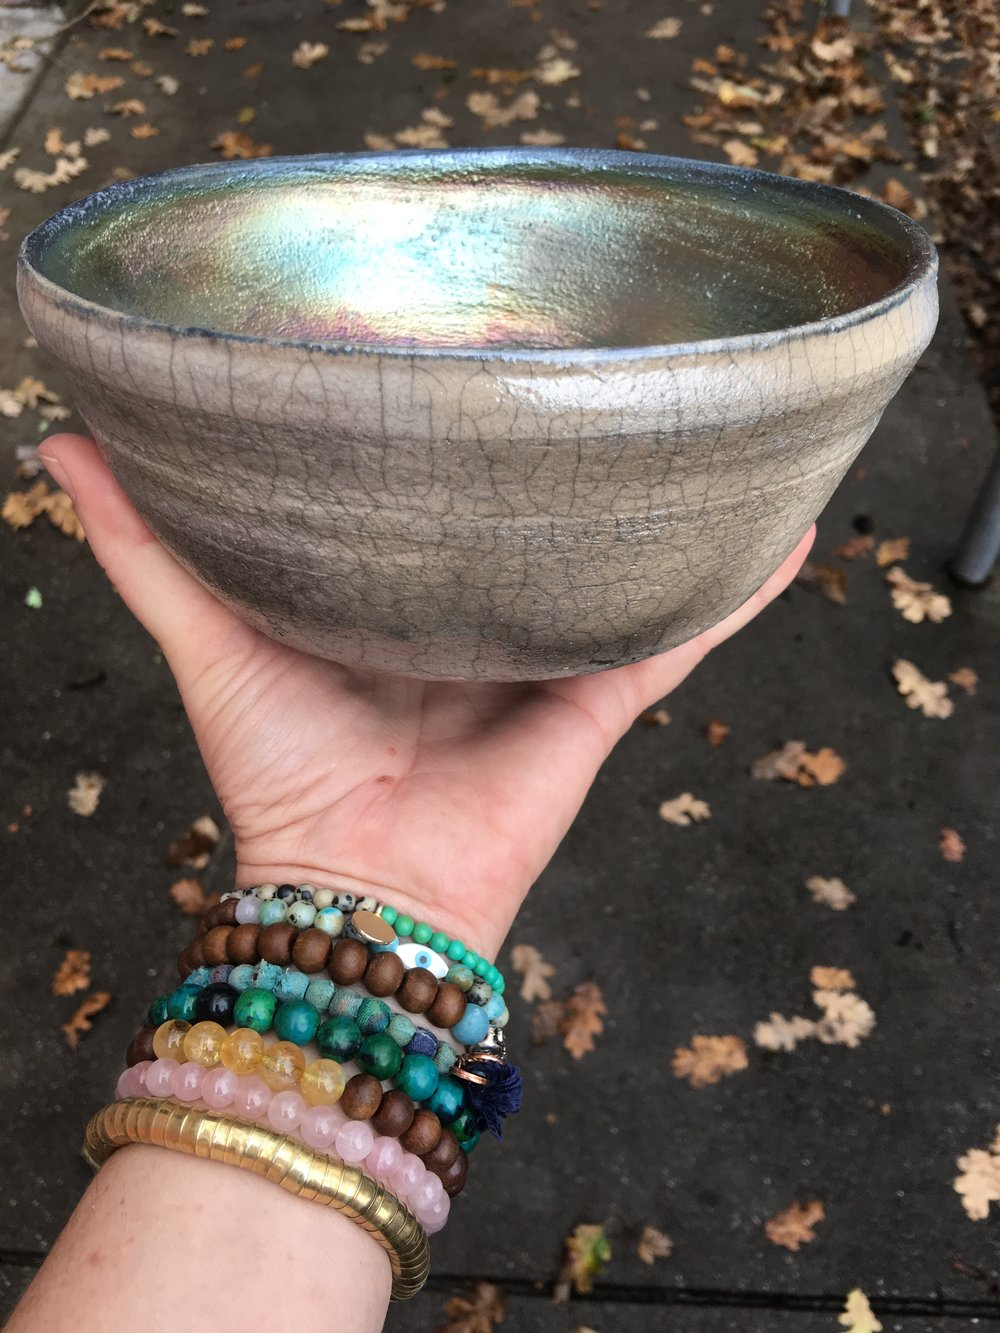 Raku firing process used for this bowl